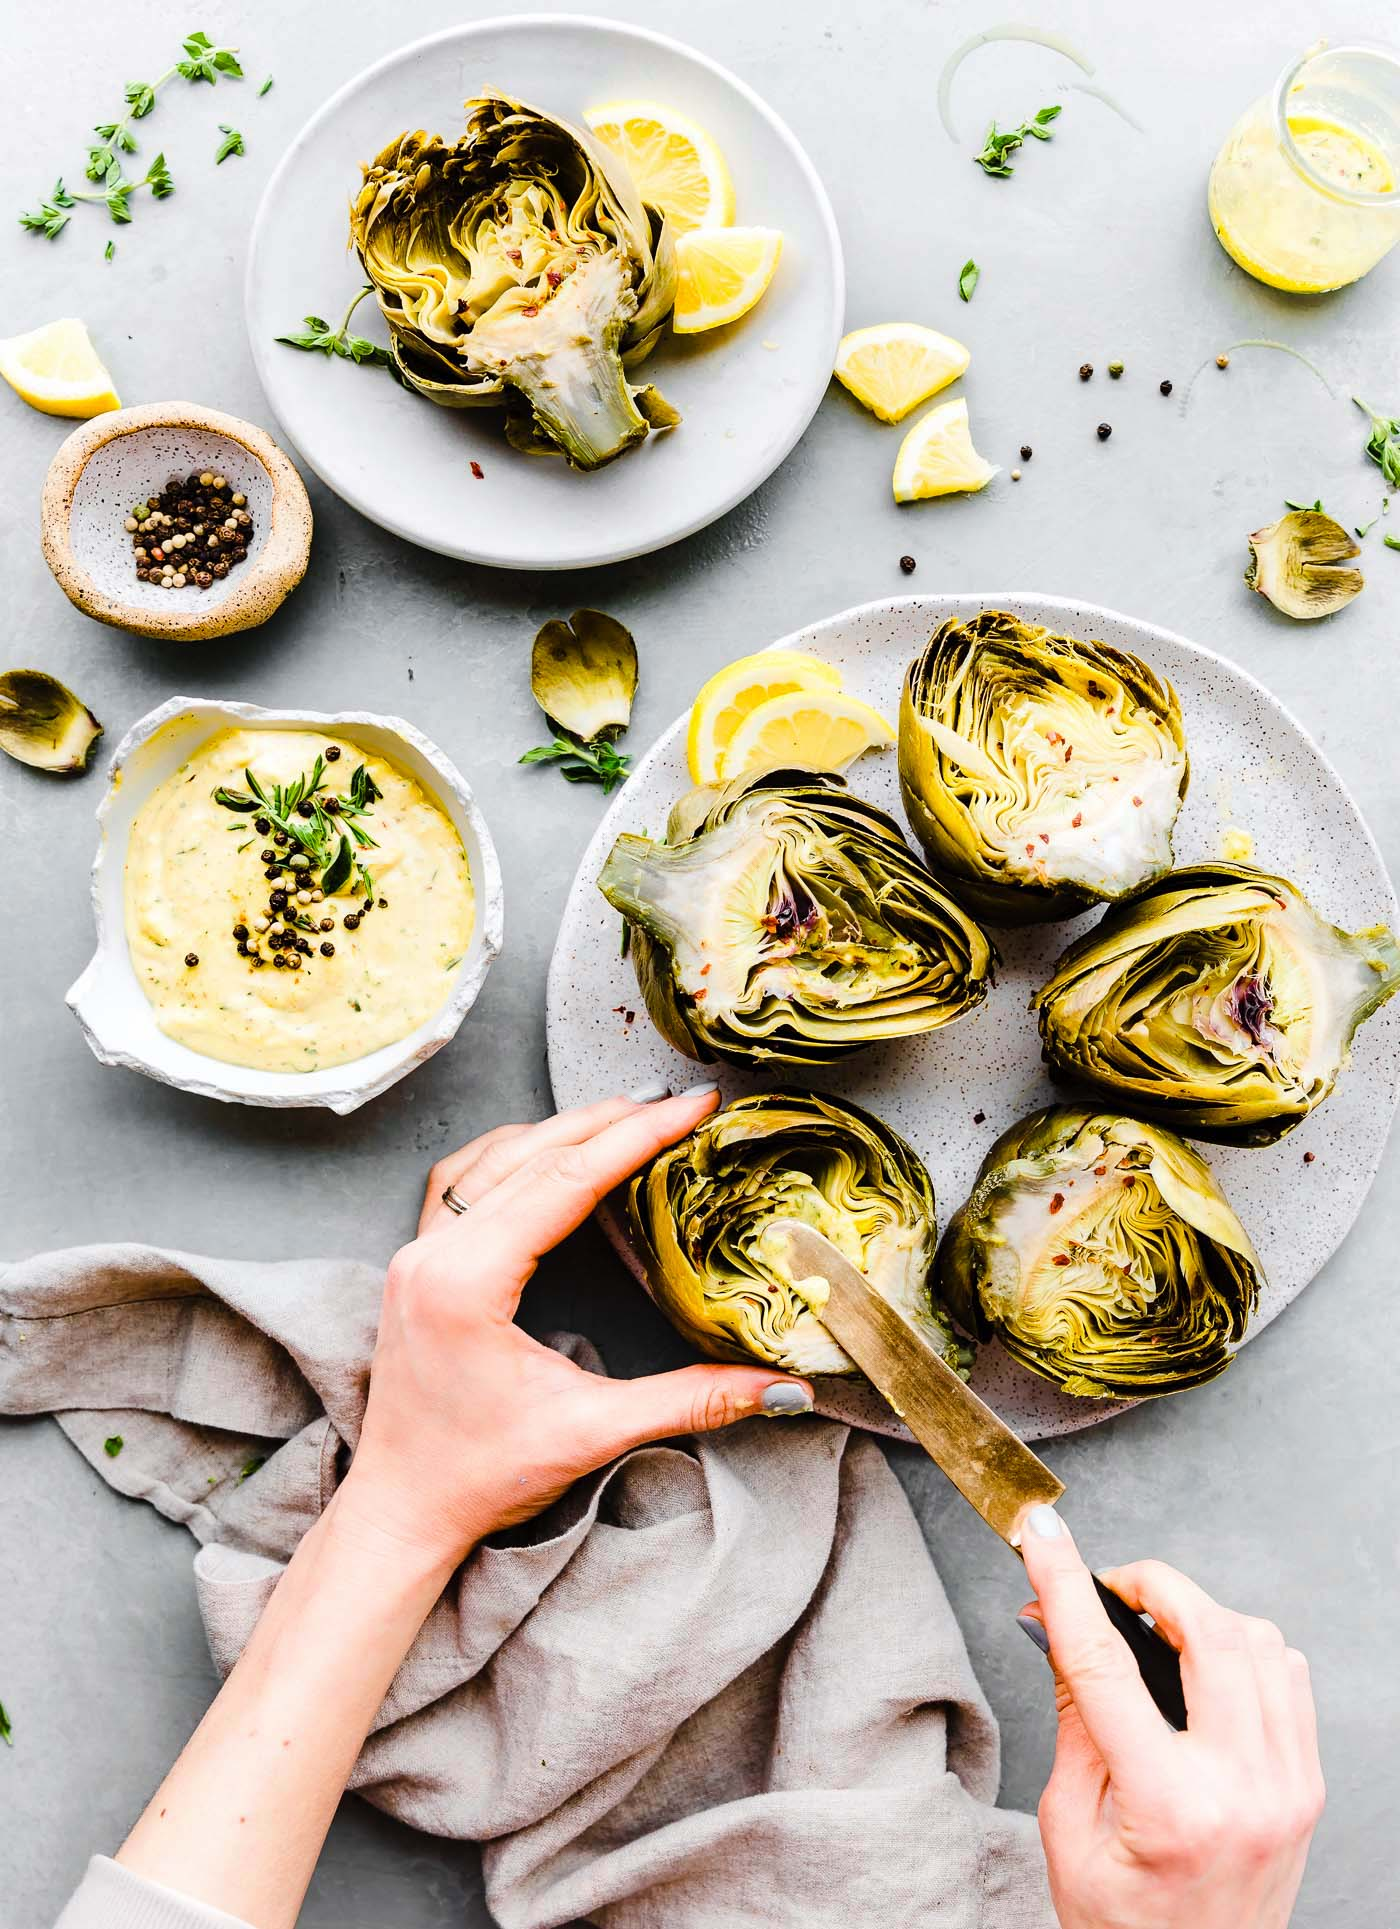 spreading aioli onto steamed artichokes